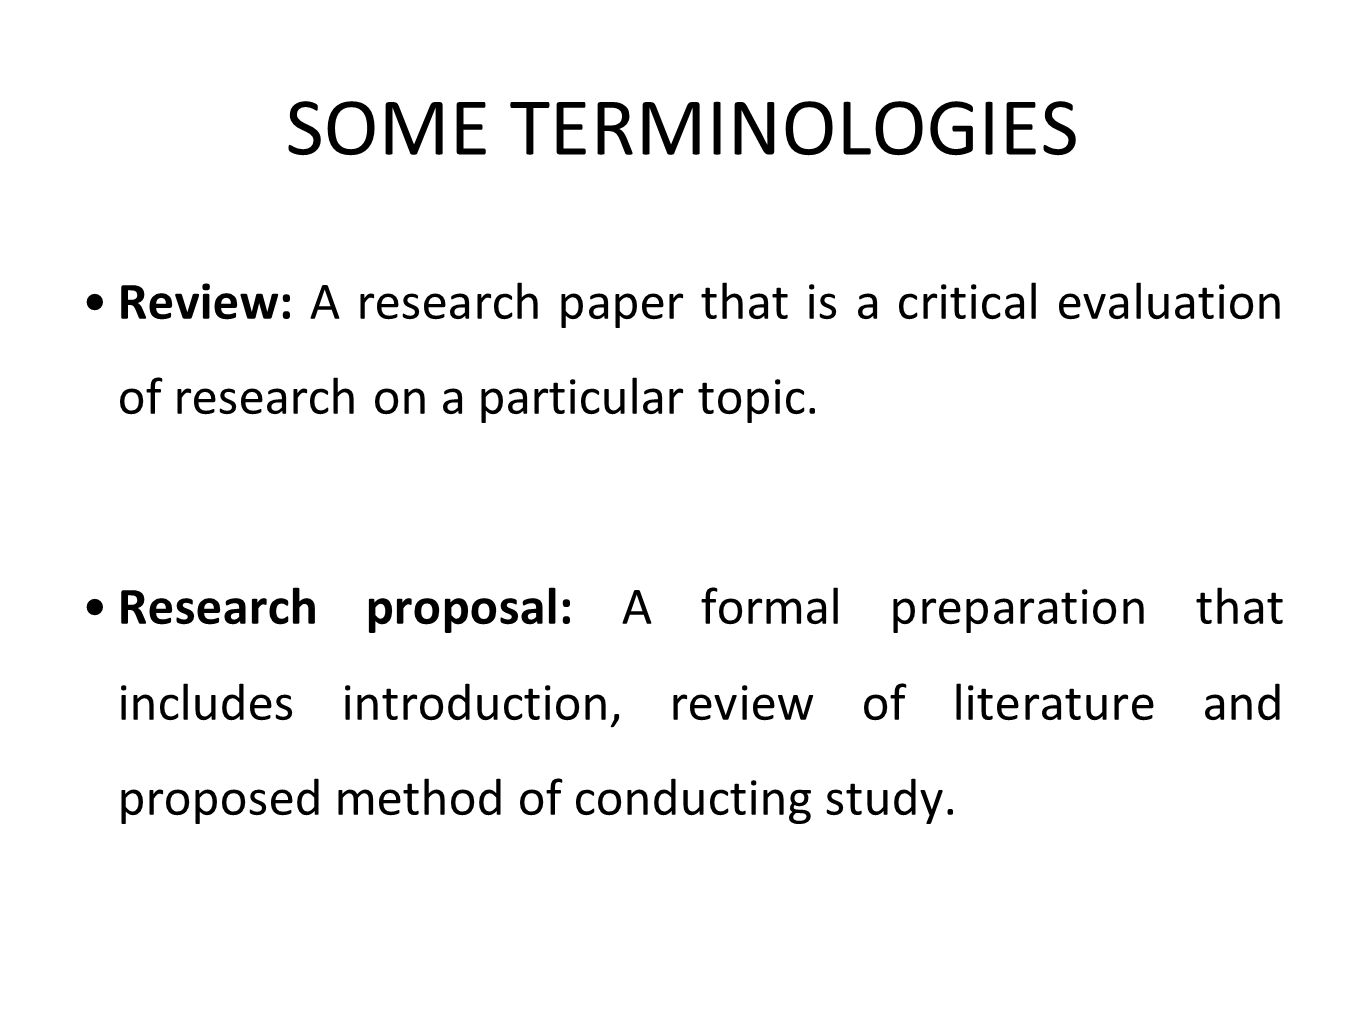 SOME TERMINOLOGIES Review: A research paper that is a critical evaluation of research on a particular topic.